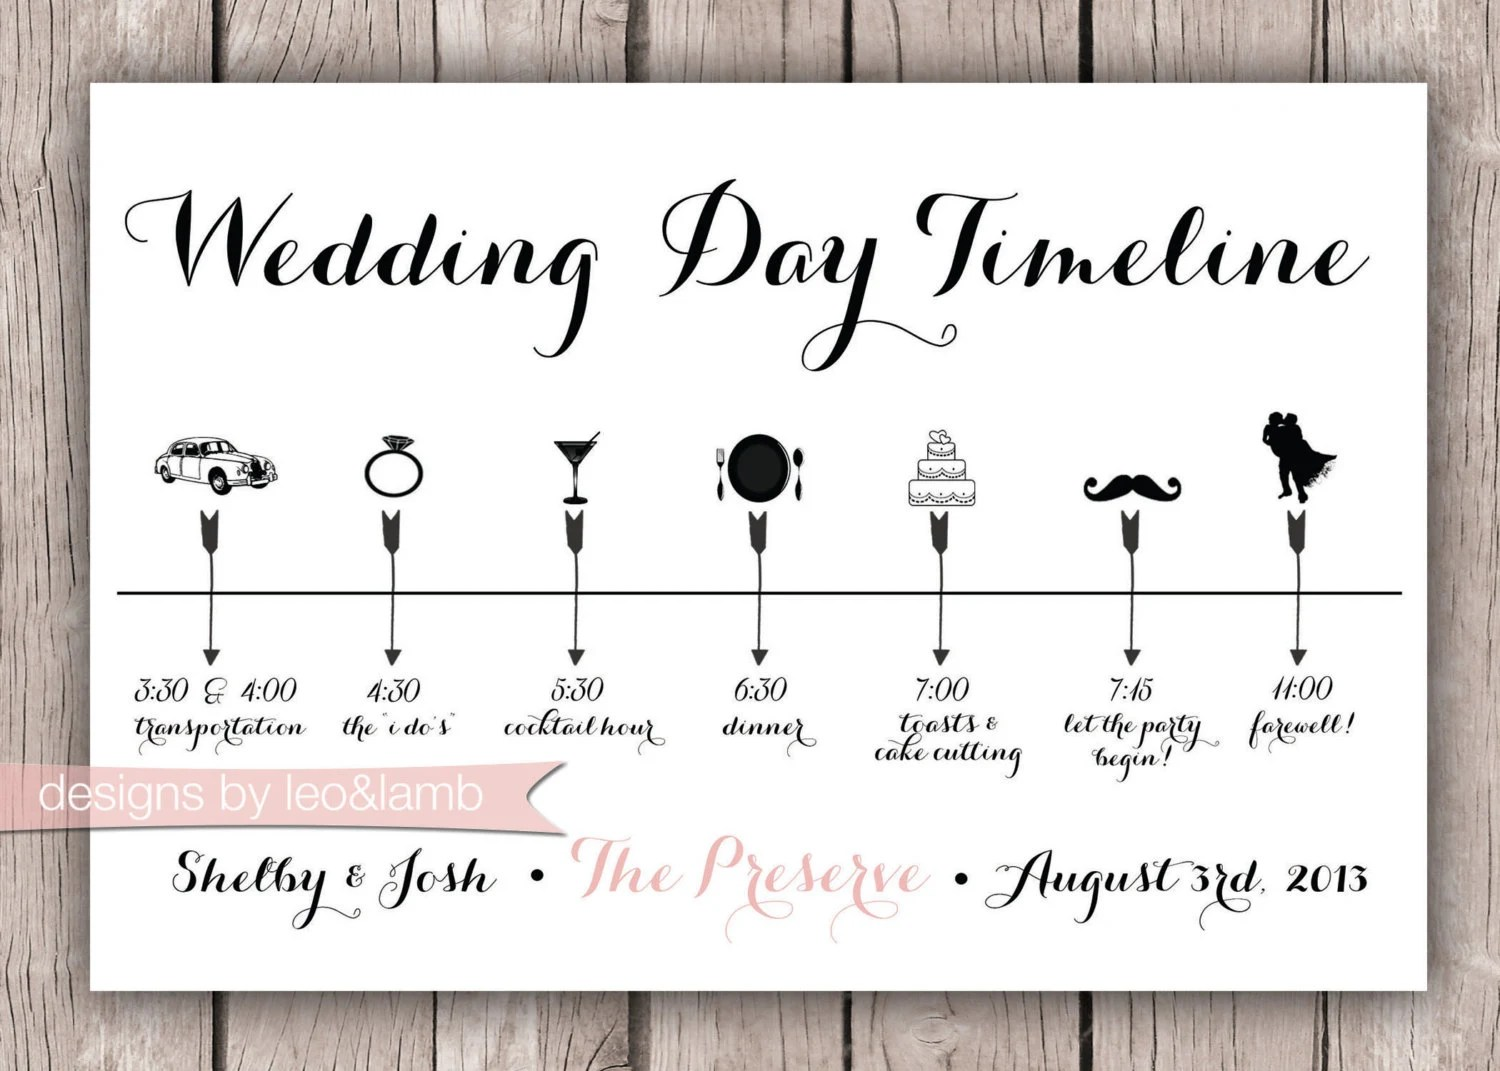 Wedding Ceremony And Reception Timeline